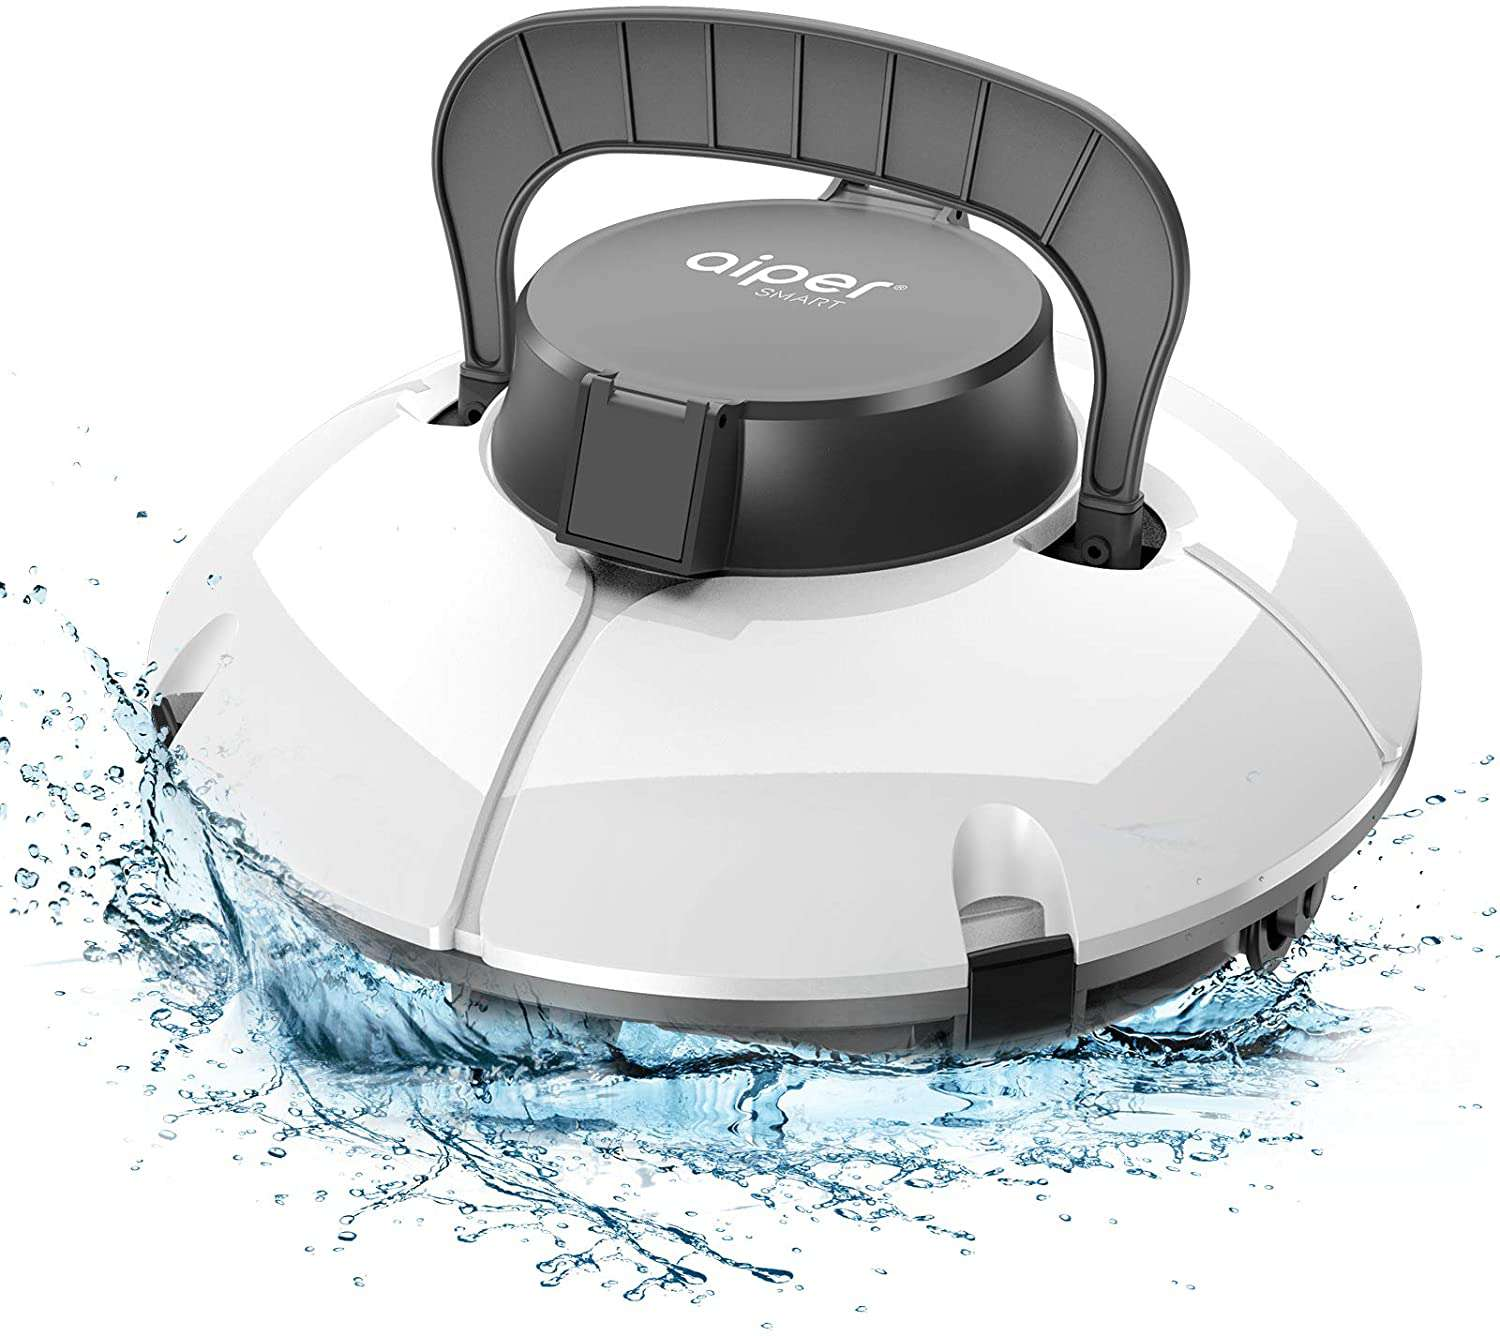 Aiper Smart HJ1102 Cordless Automatic Pool Cleaner